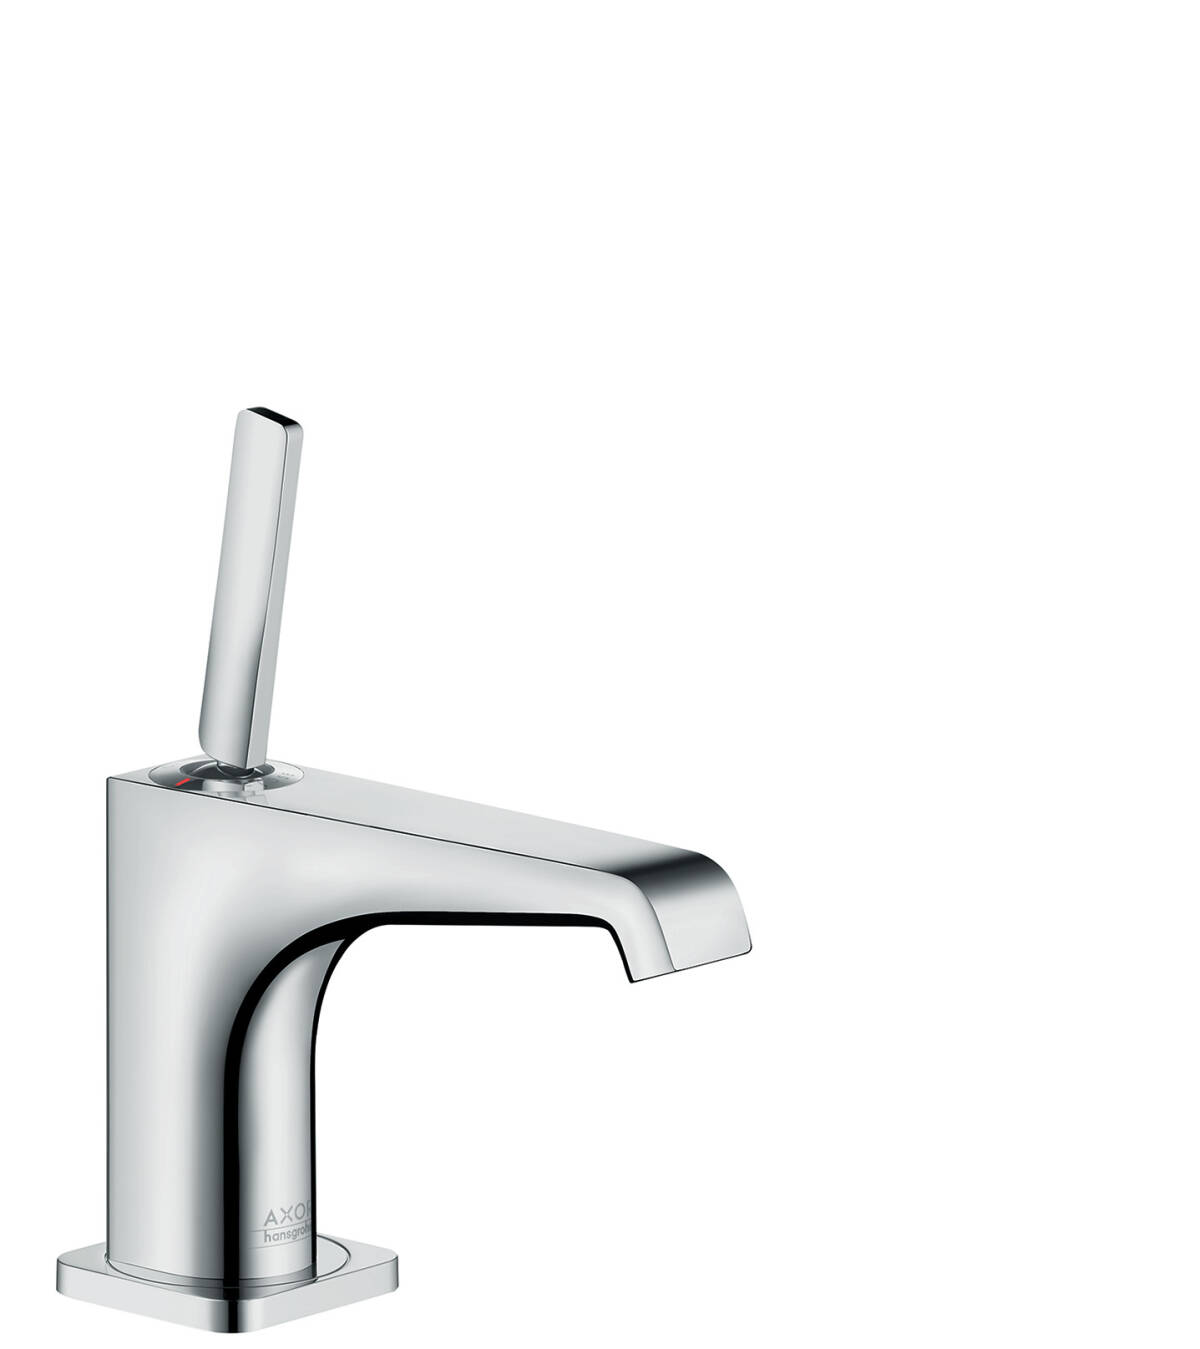 Single lever basin mixer 90 for hand washbasins with waste set, Polished Black Chrome, 36102330